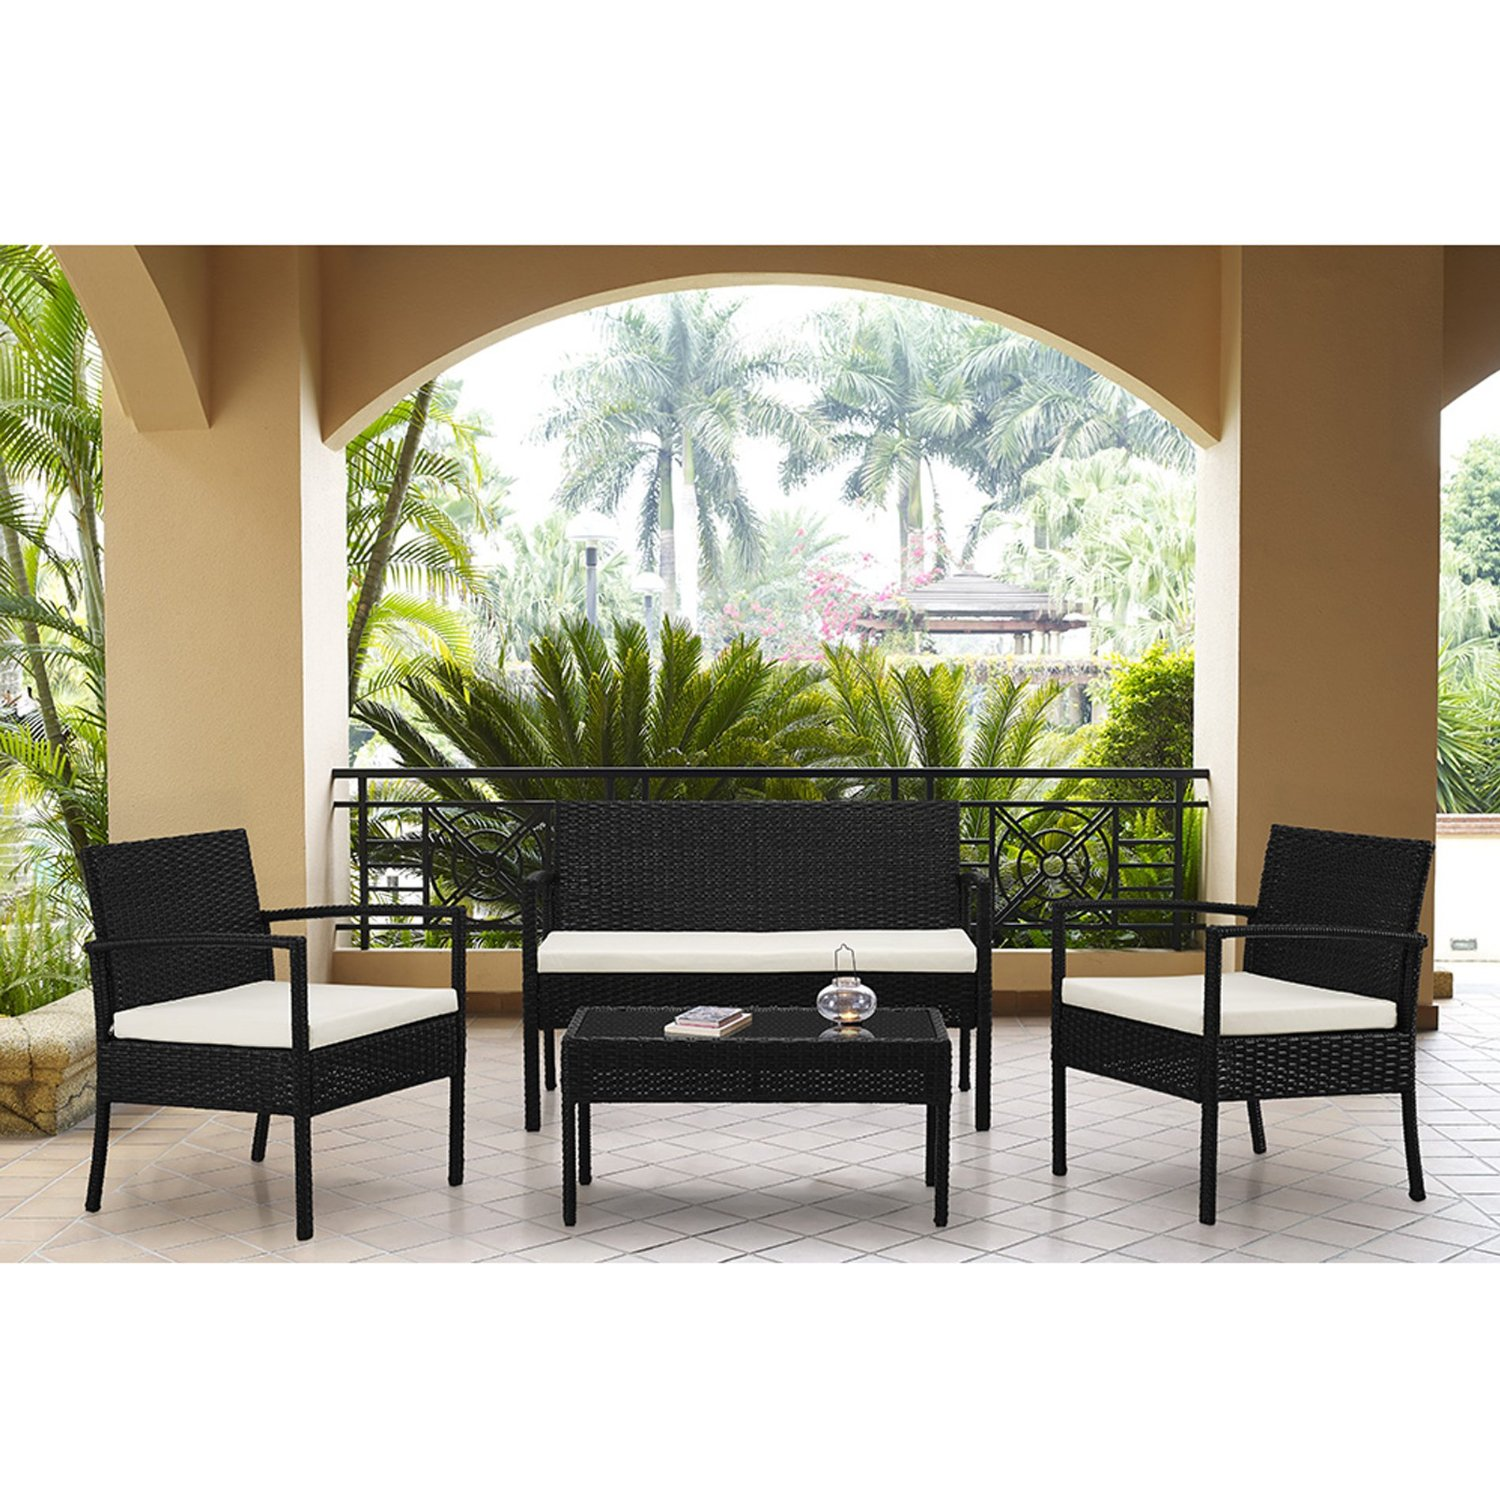 Round Table Patio Furniture Sets Outdoor Garden Patio 4 Piece Cushioned Seat Black Wicker Sofa